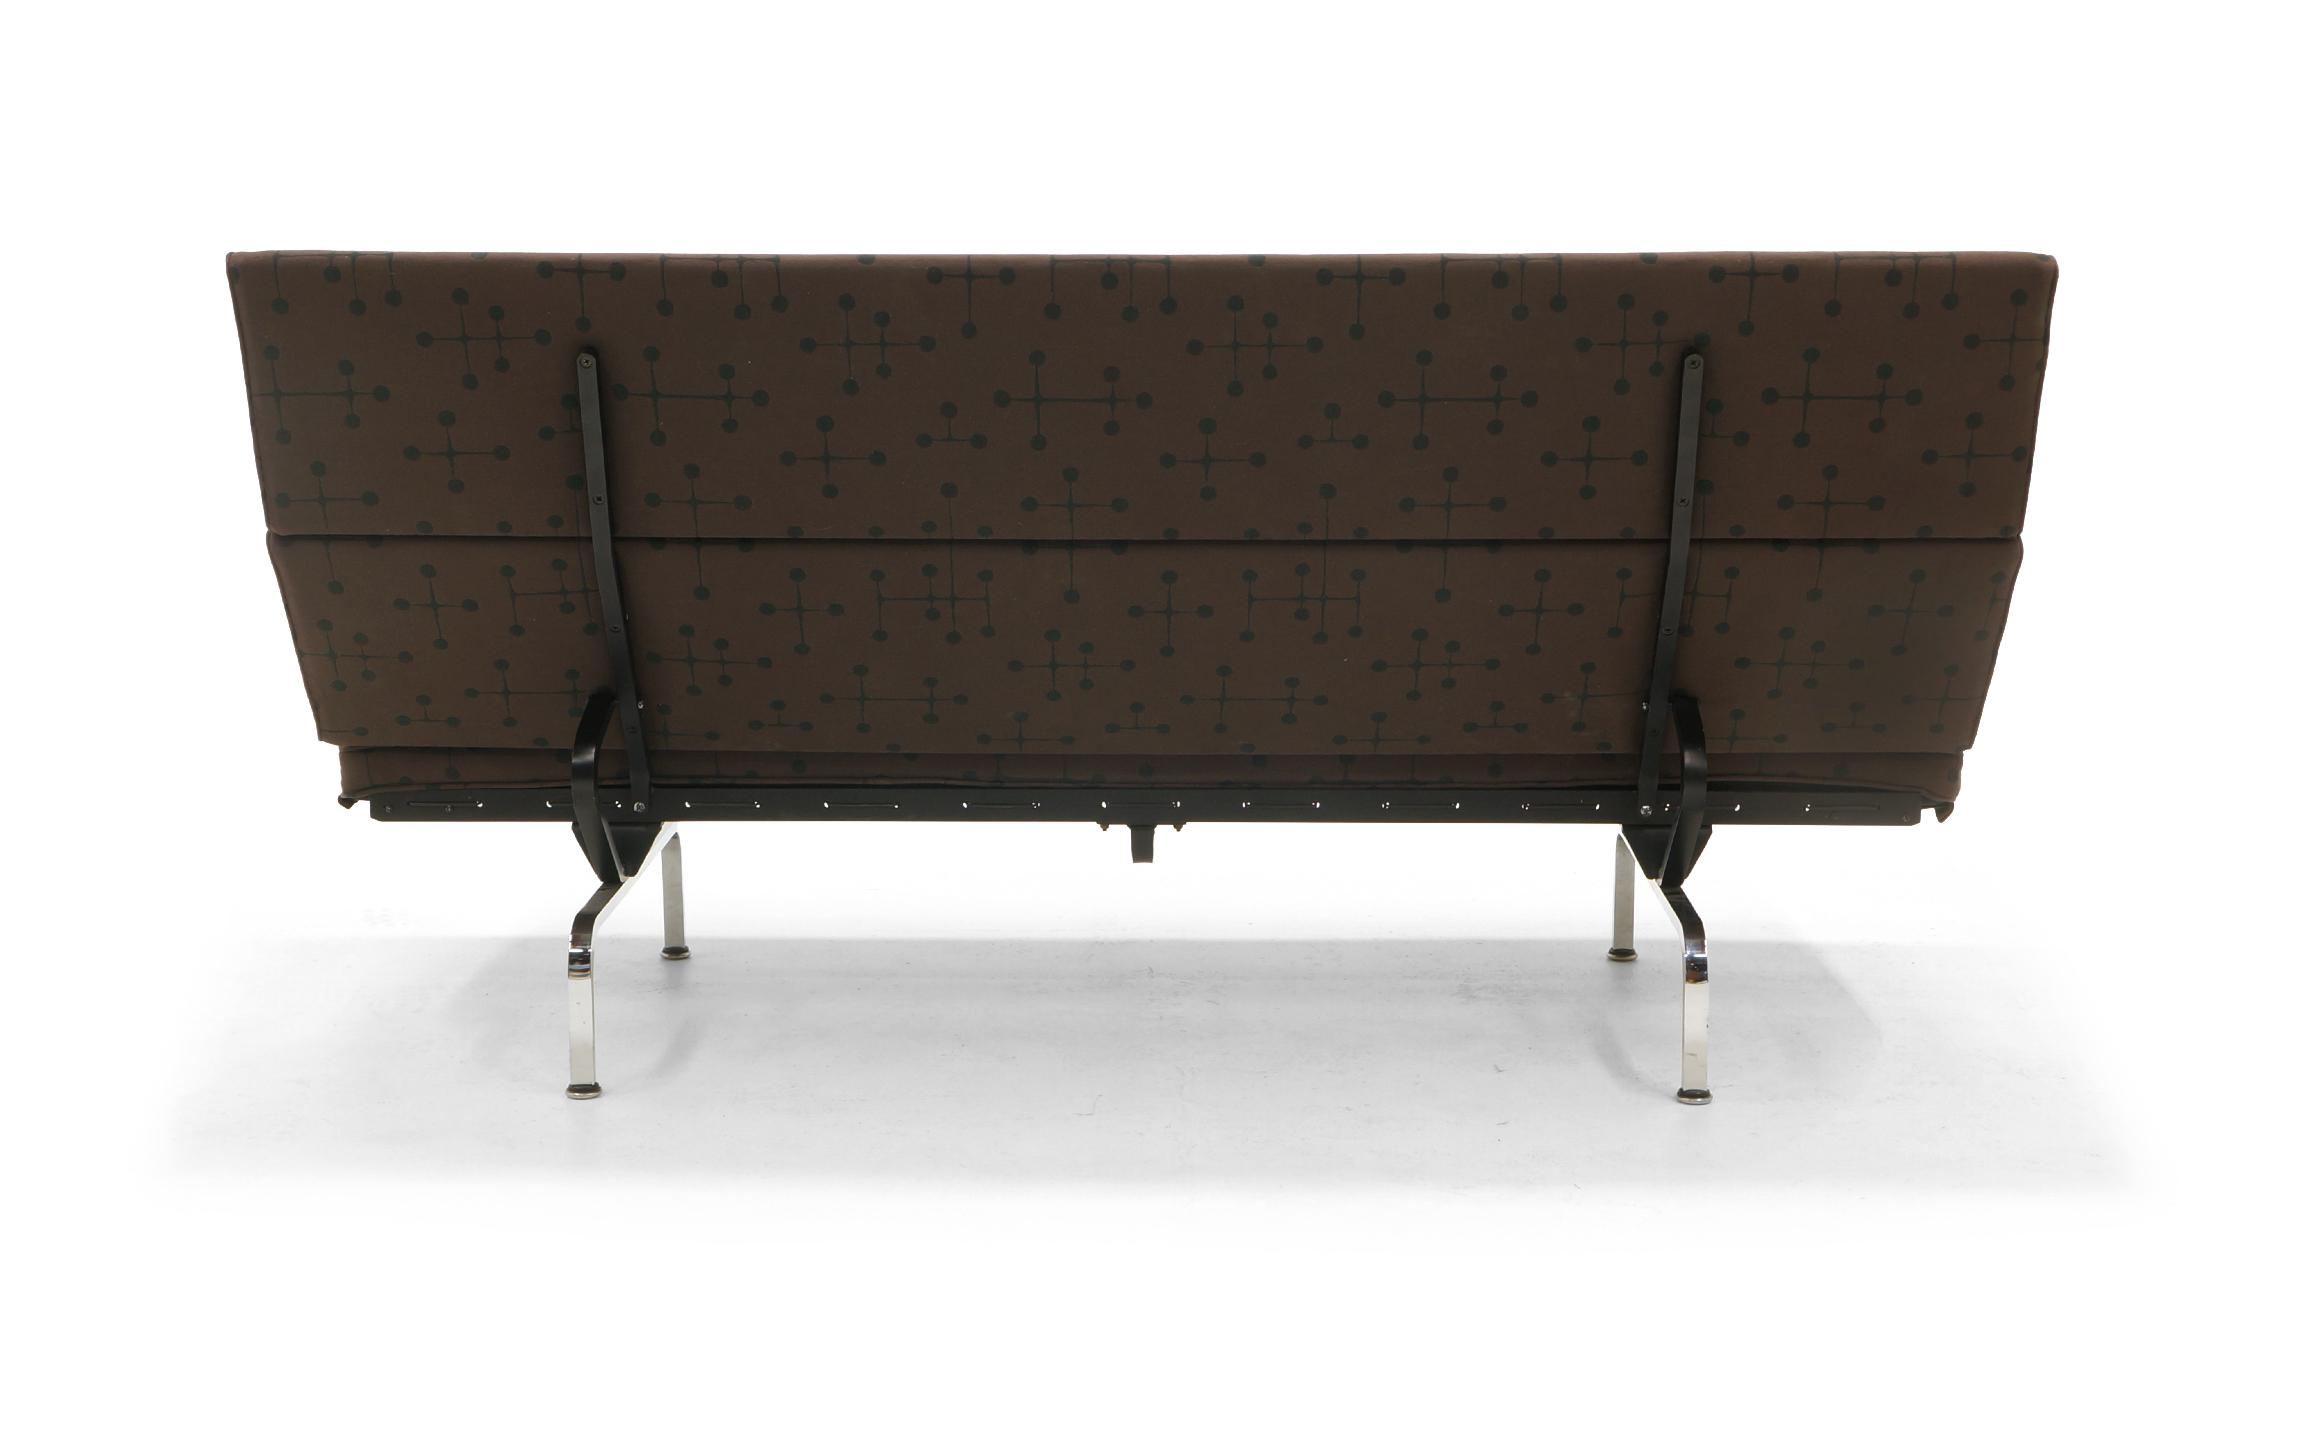 Charles And Ray Eames Sofa Compact For Herman Miller In Eames Dot Pattern  Fabric   Image